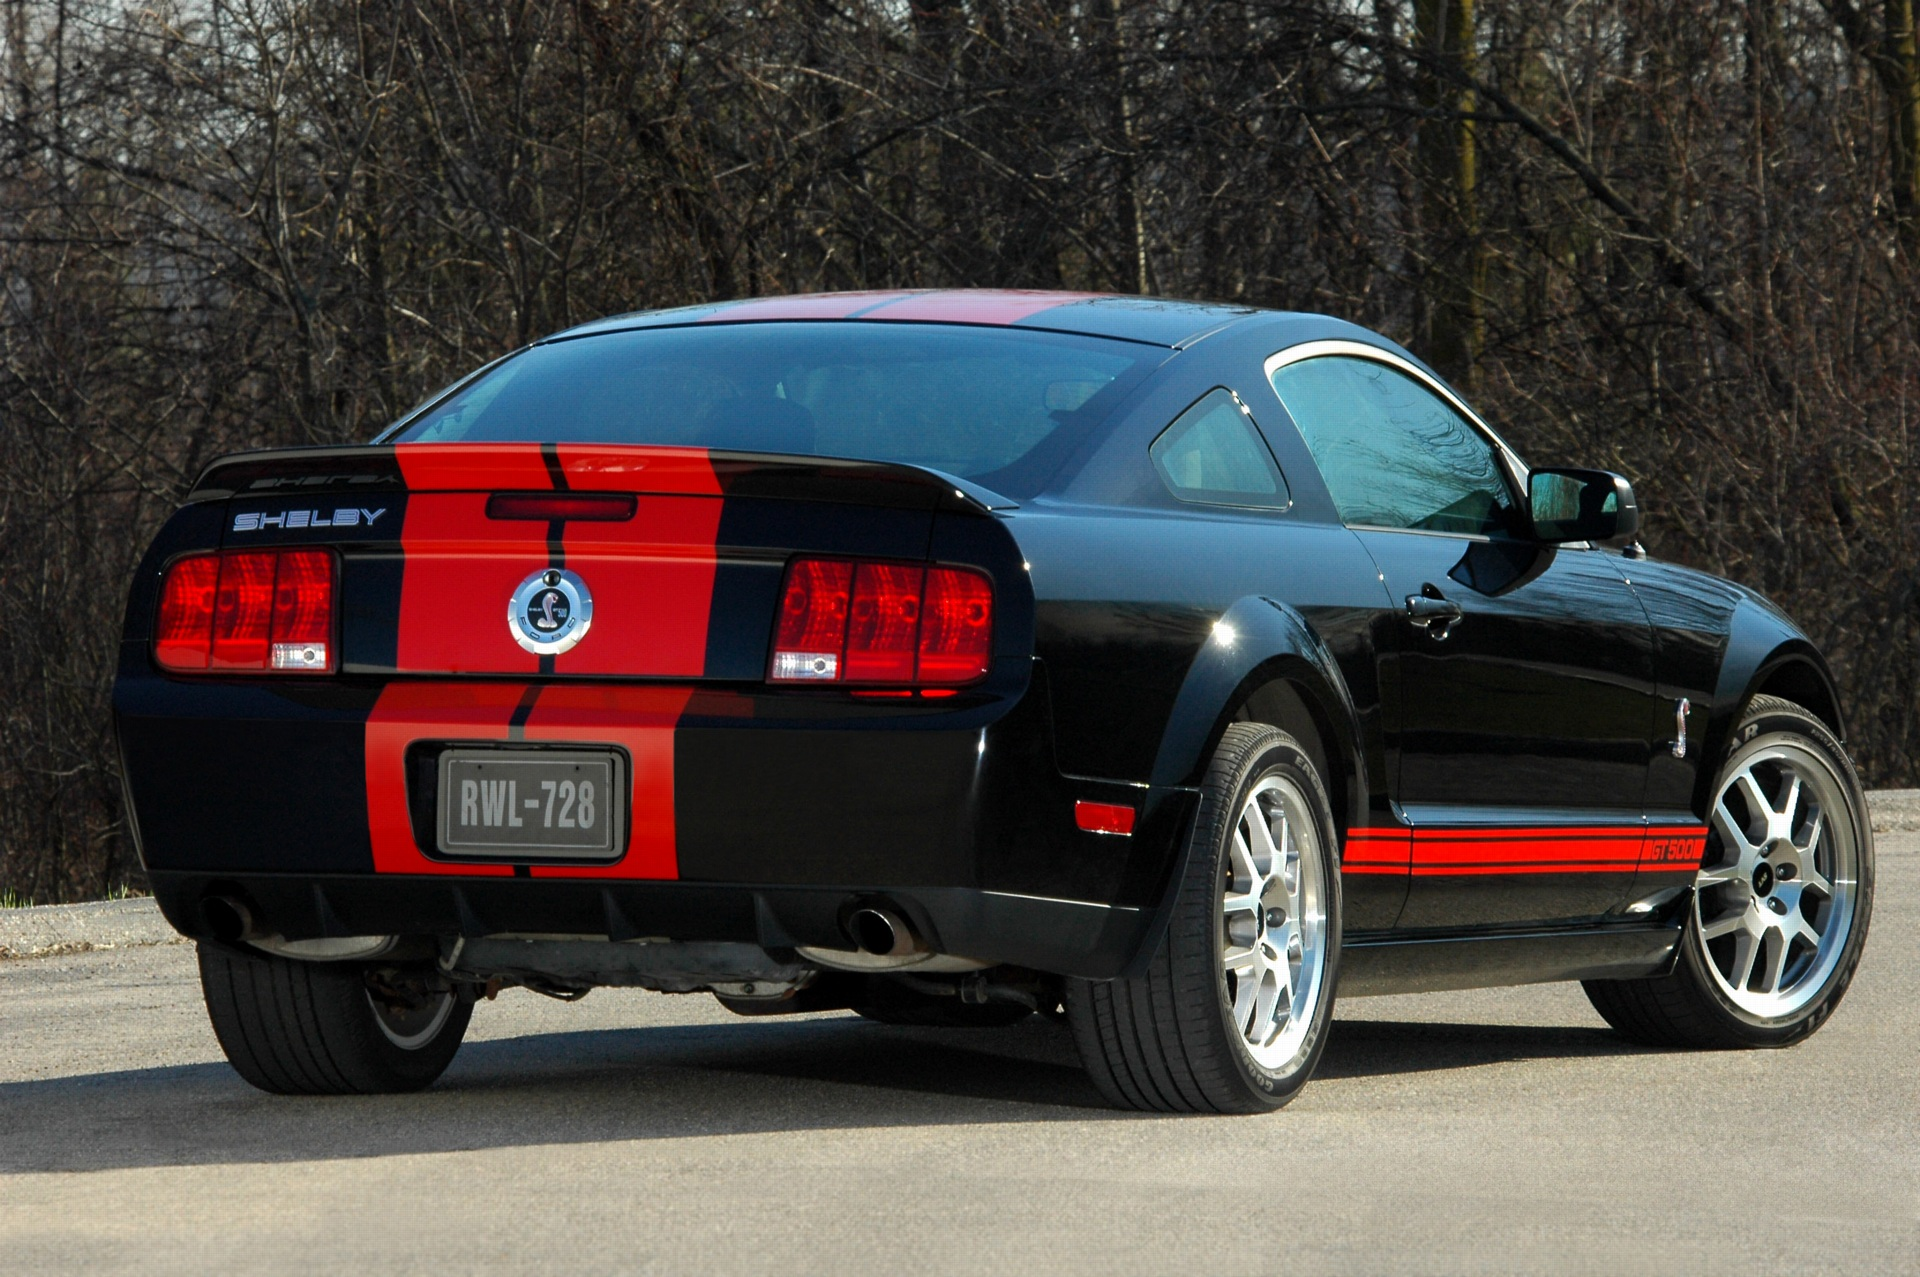 2007 Shelby Mustang GT500 Red Stripe Pictures, History, Value, Research, News - conceptcarz.com